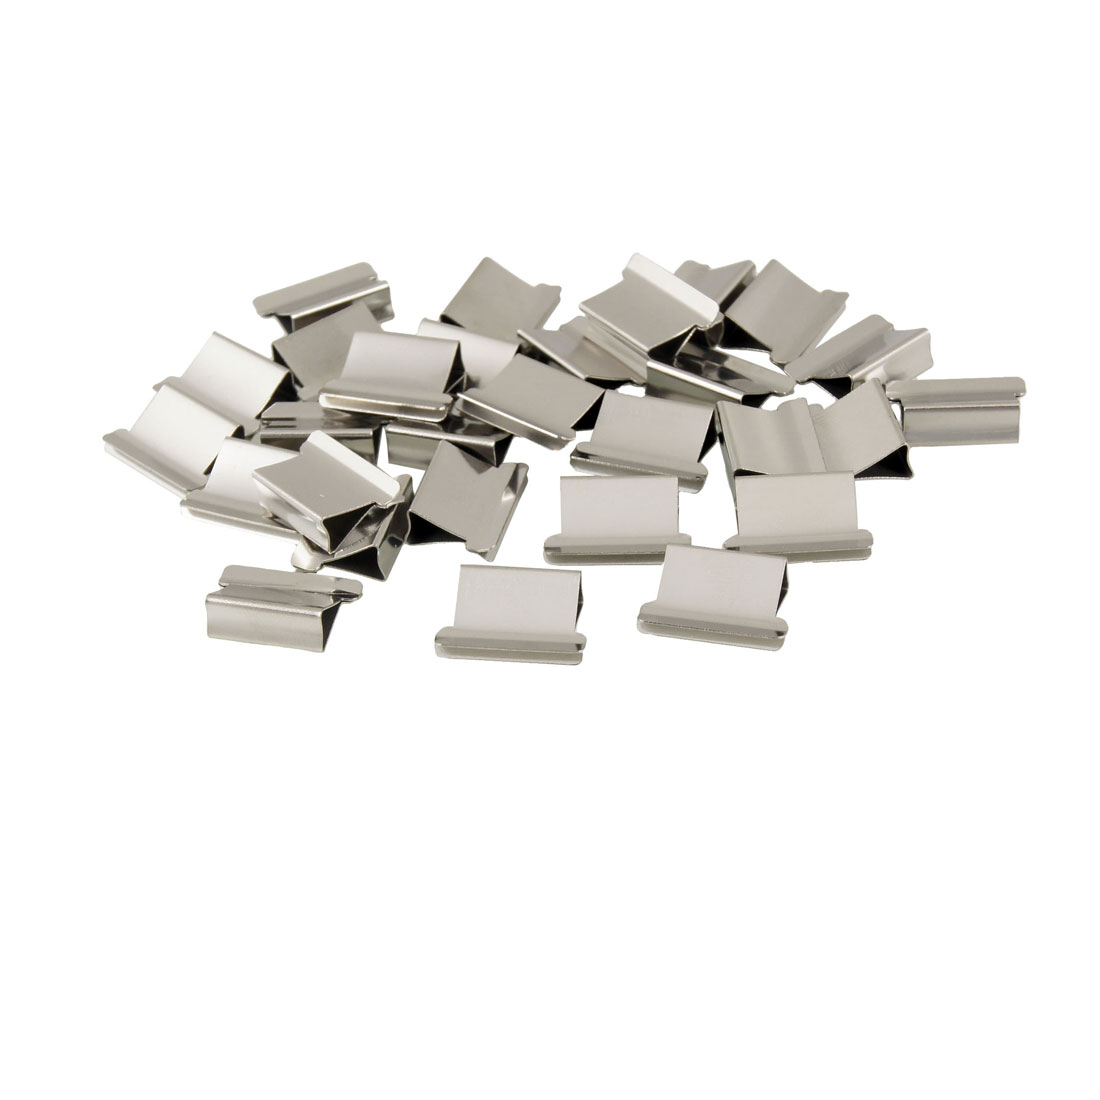 30 Pcs T-225 Office Stationery Metal Clip Clamp Dispenser Refill